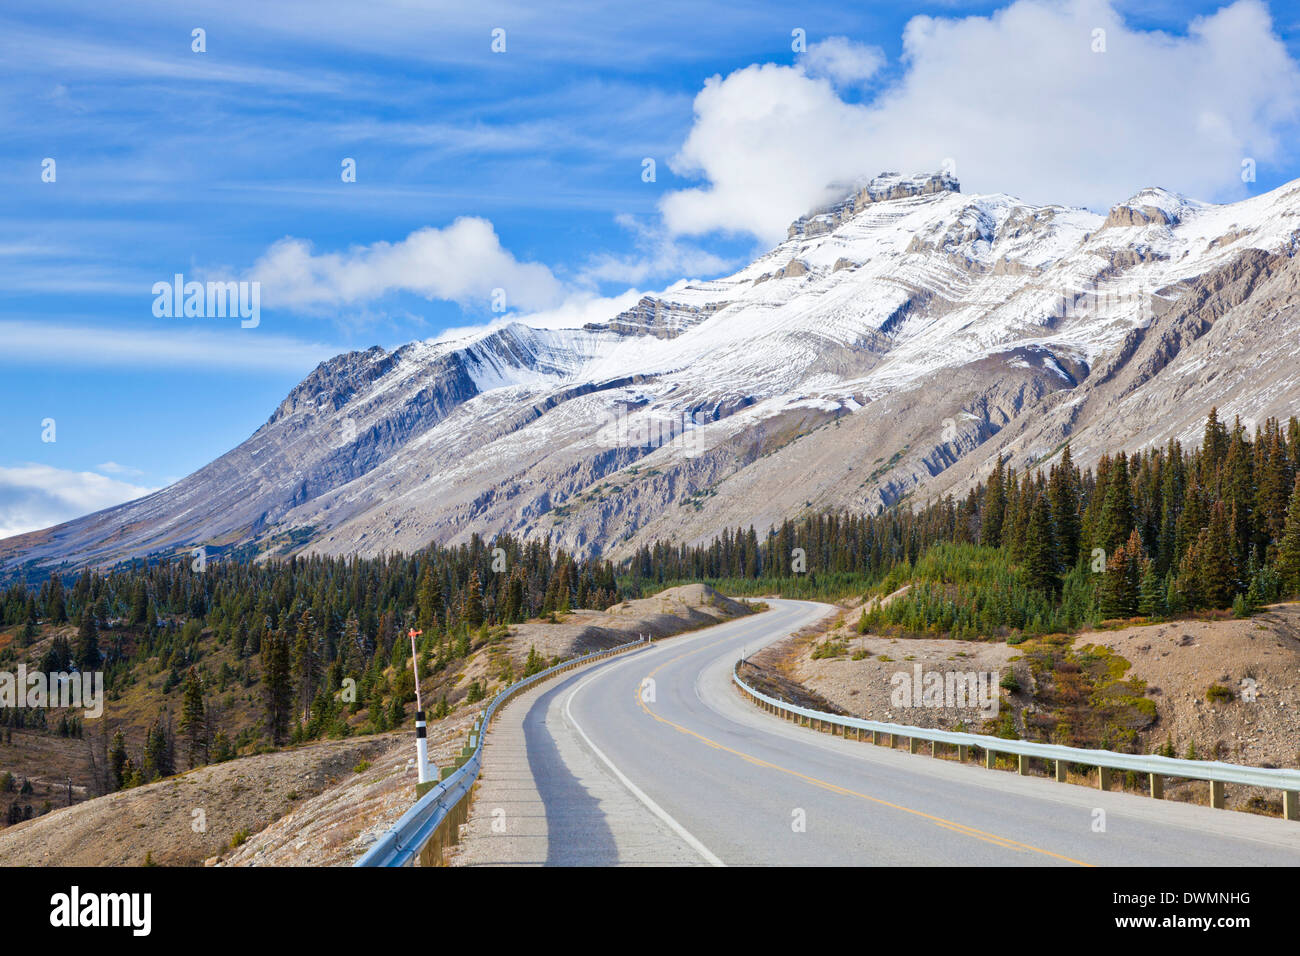 The Icefields Parkway road highway through Jasper National Park, UNESCO World Heritage Site, Alberta, Canadian Rockies, Canada - Stock Image